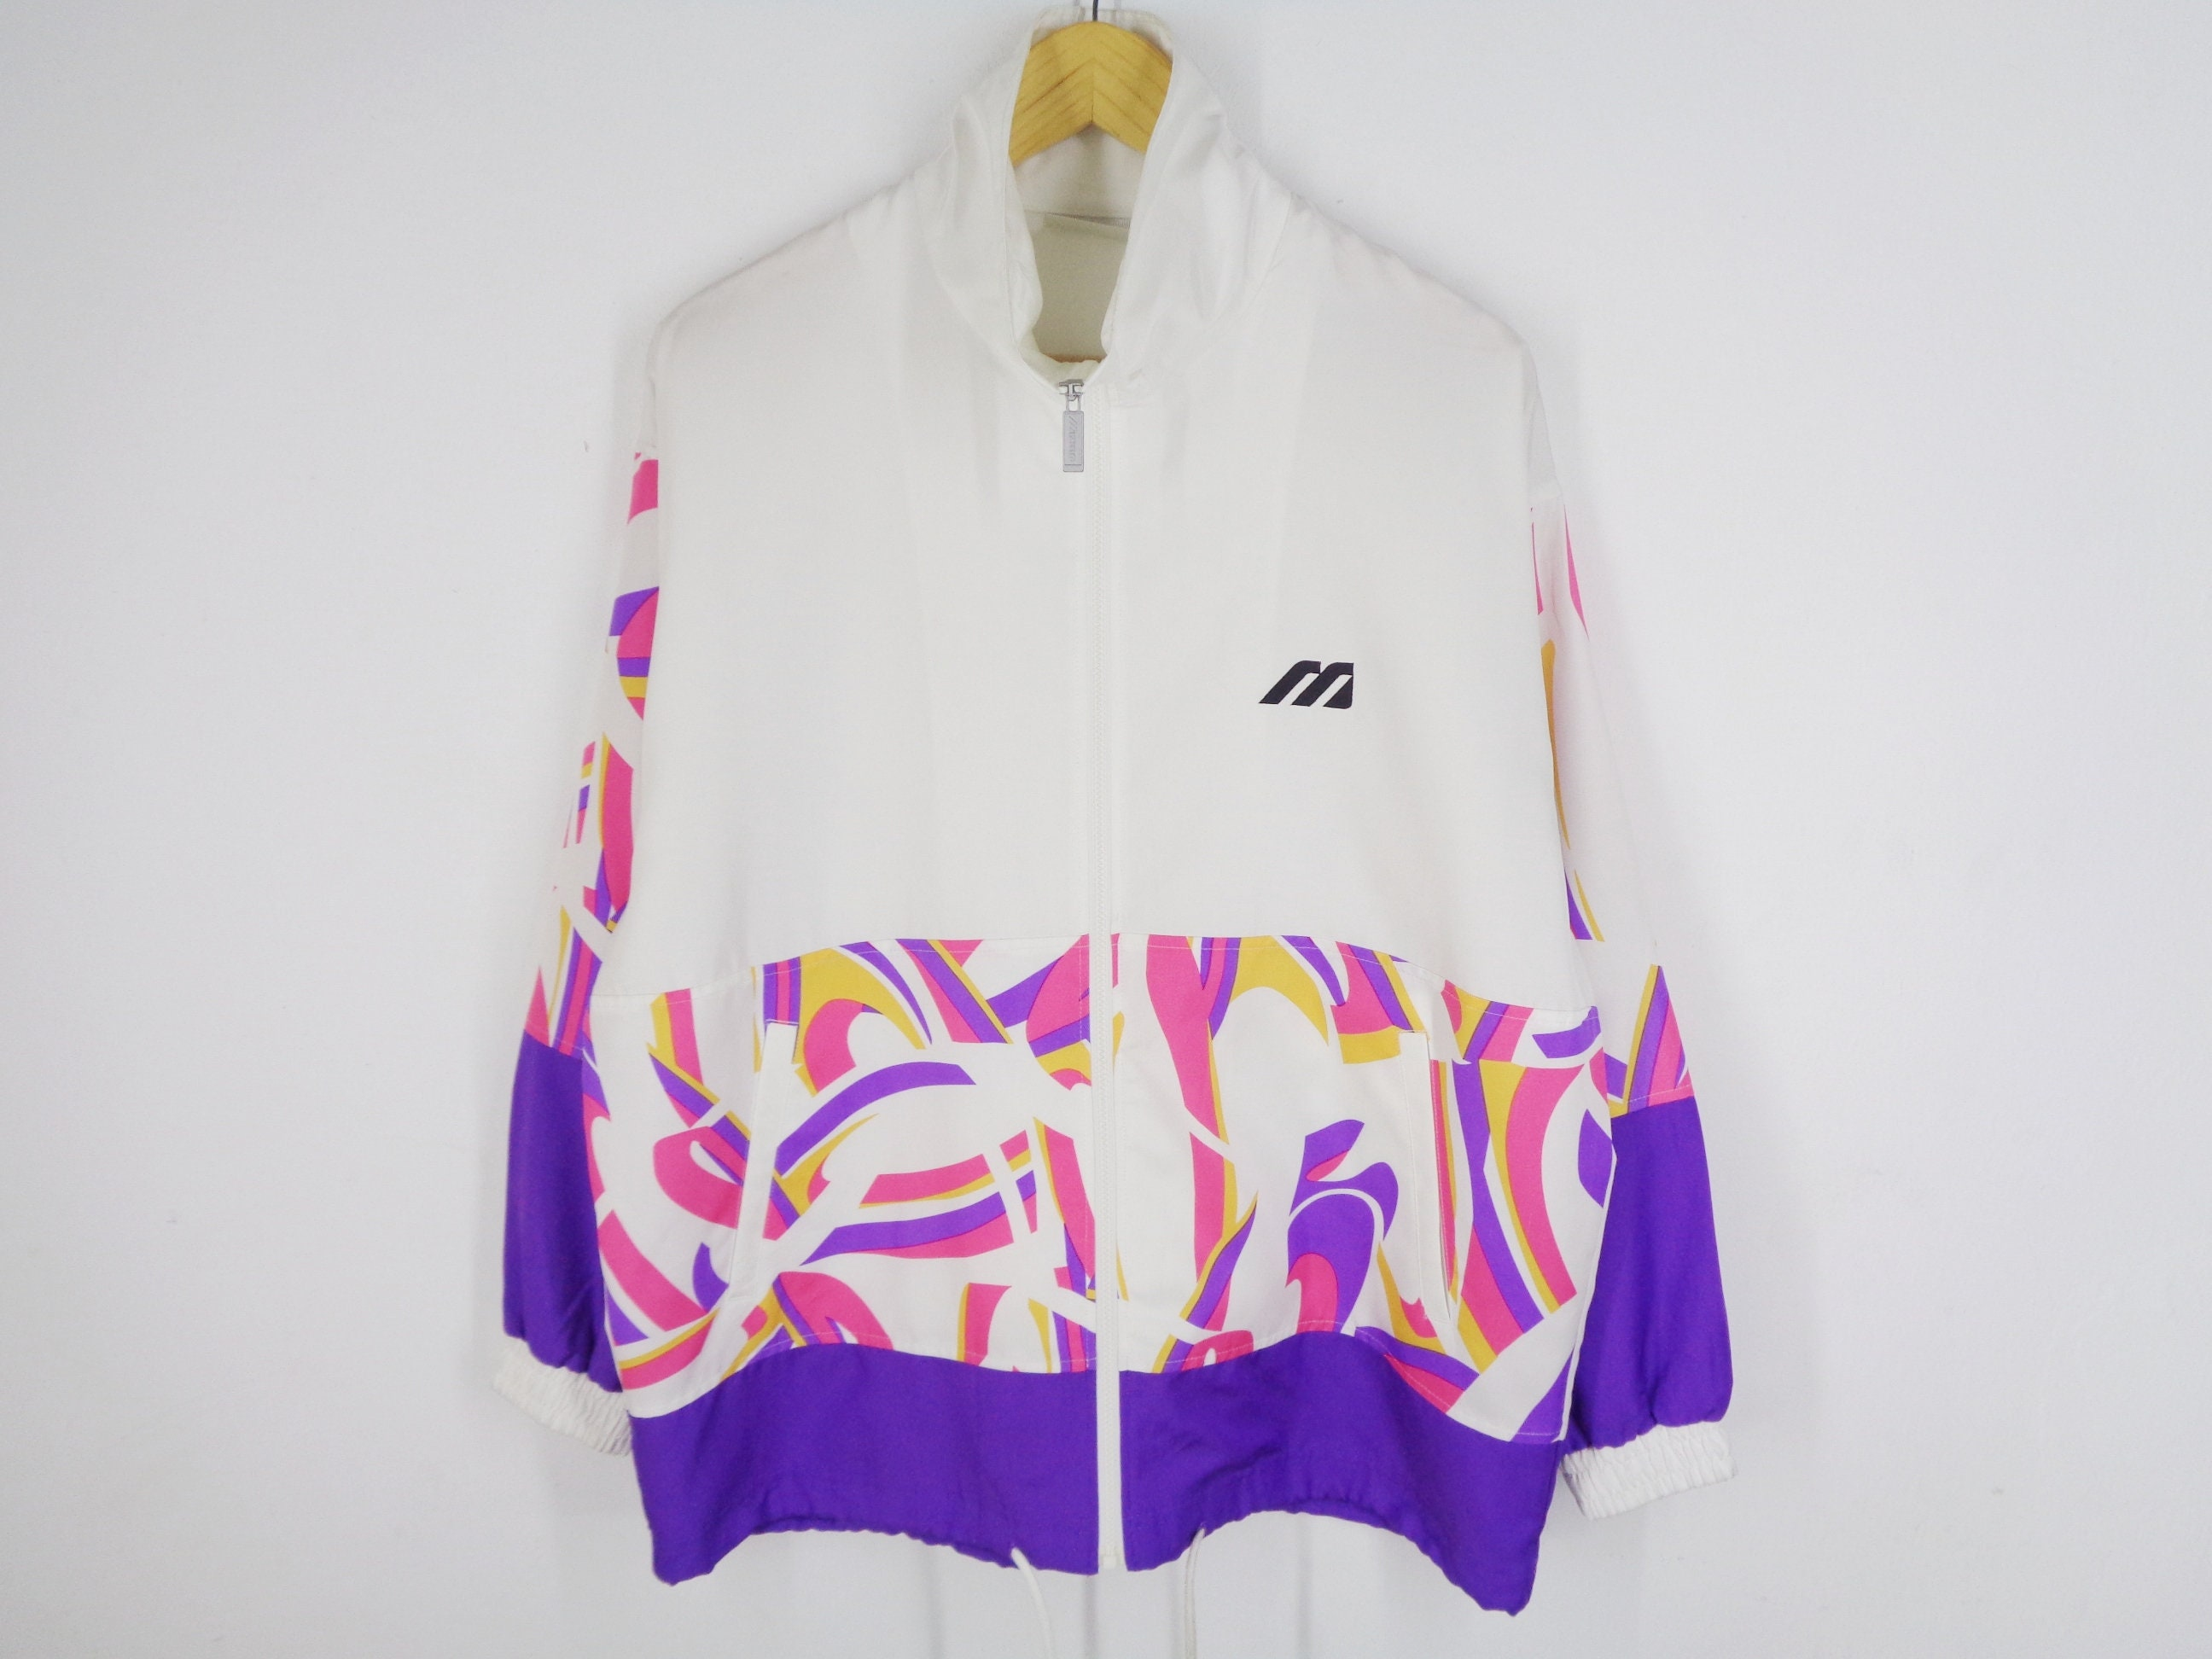 97d802f7e90b5 Mizuno Windbreaker Vintage 90's Mizuno Track Top Colorblock Mizuno Light  Weight Jacket Men's Size L